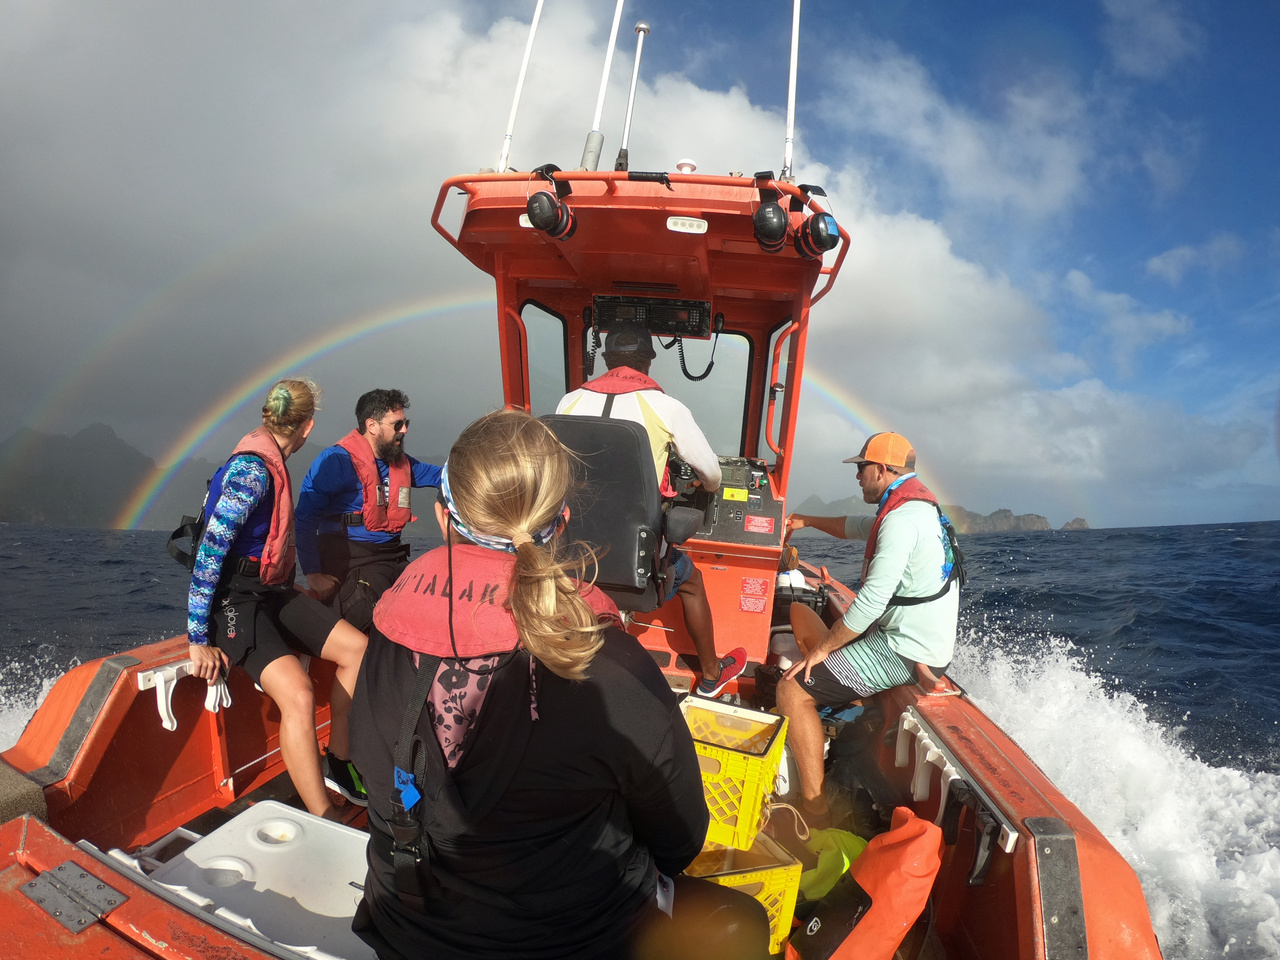 Scientists hang on as the small boat Metal Shark transits into rougher weather on the way to one of their permanent sites. We experience many conditions out here, including rain showers and rainbows! (Photo: NOAA Fisheries/Evan Barba)